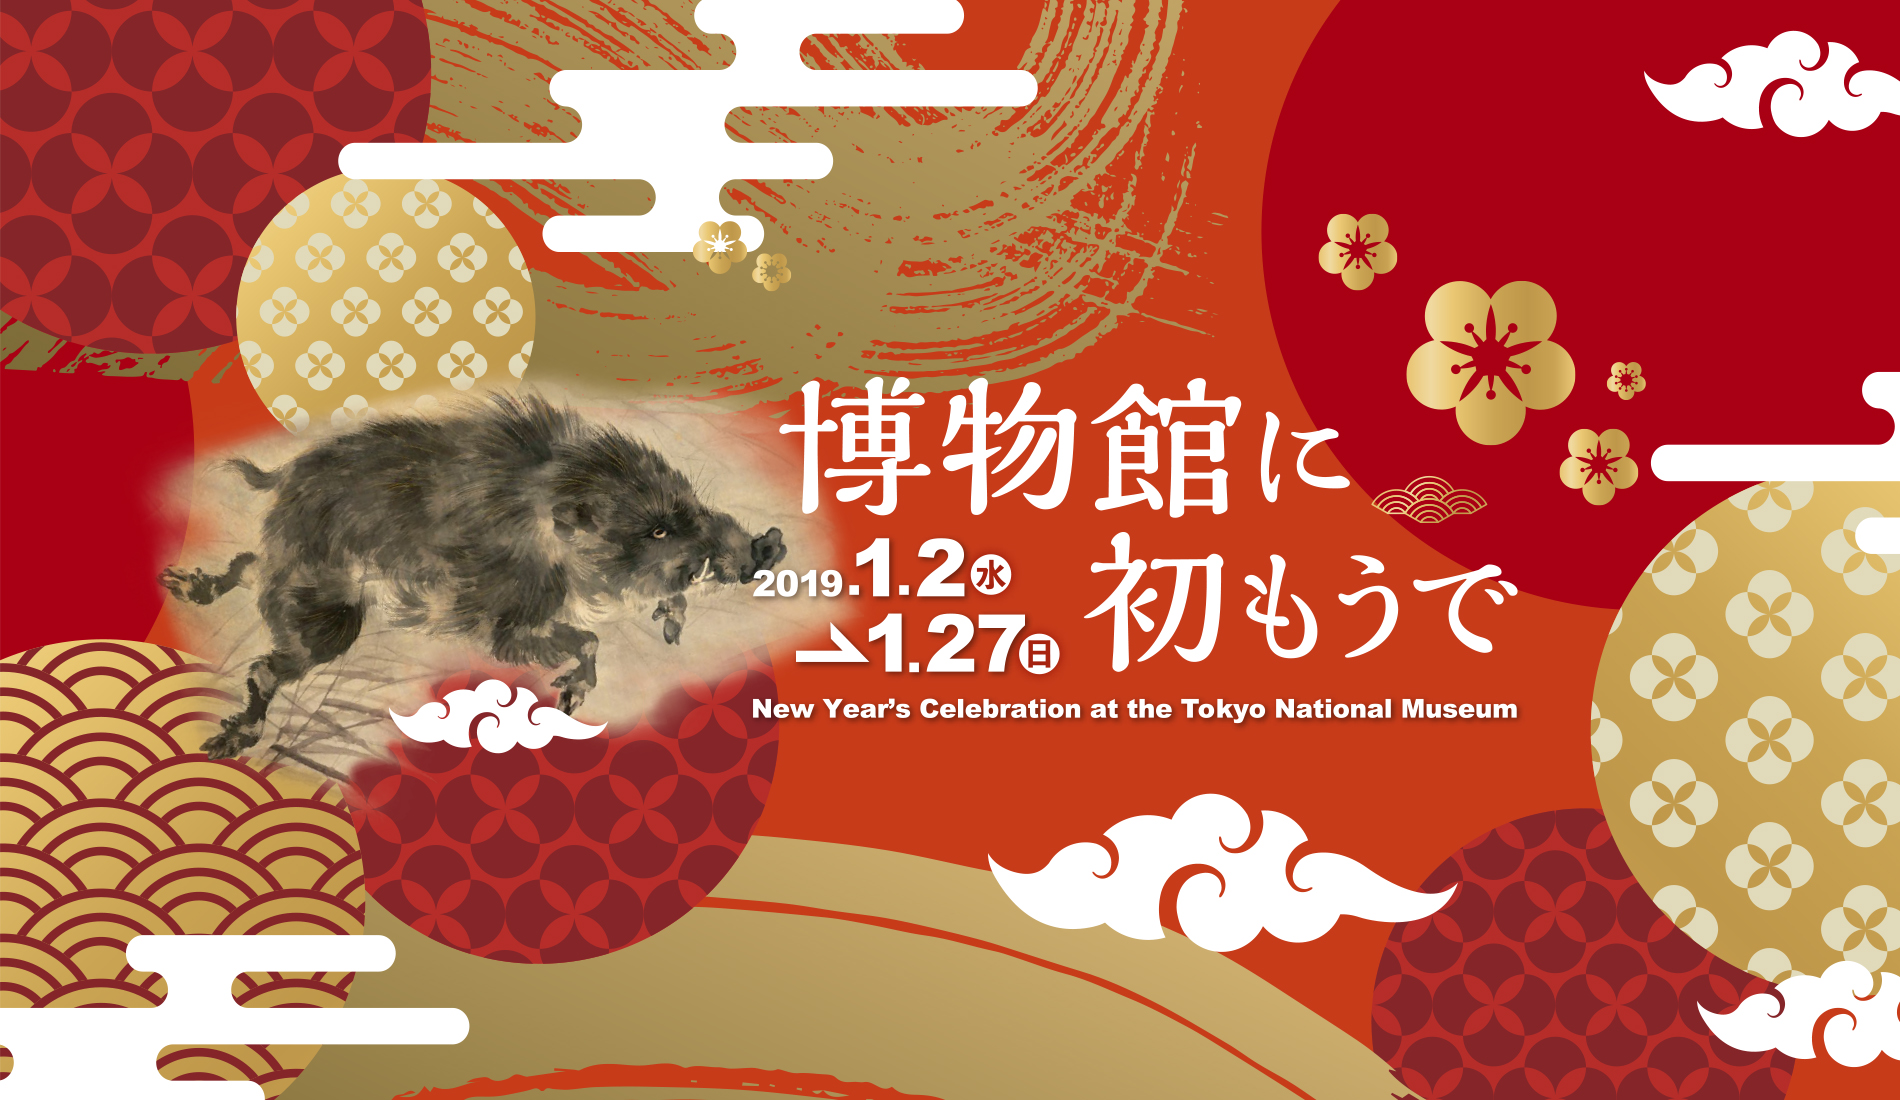 New Year's Celebration at the Tokyo National Museum